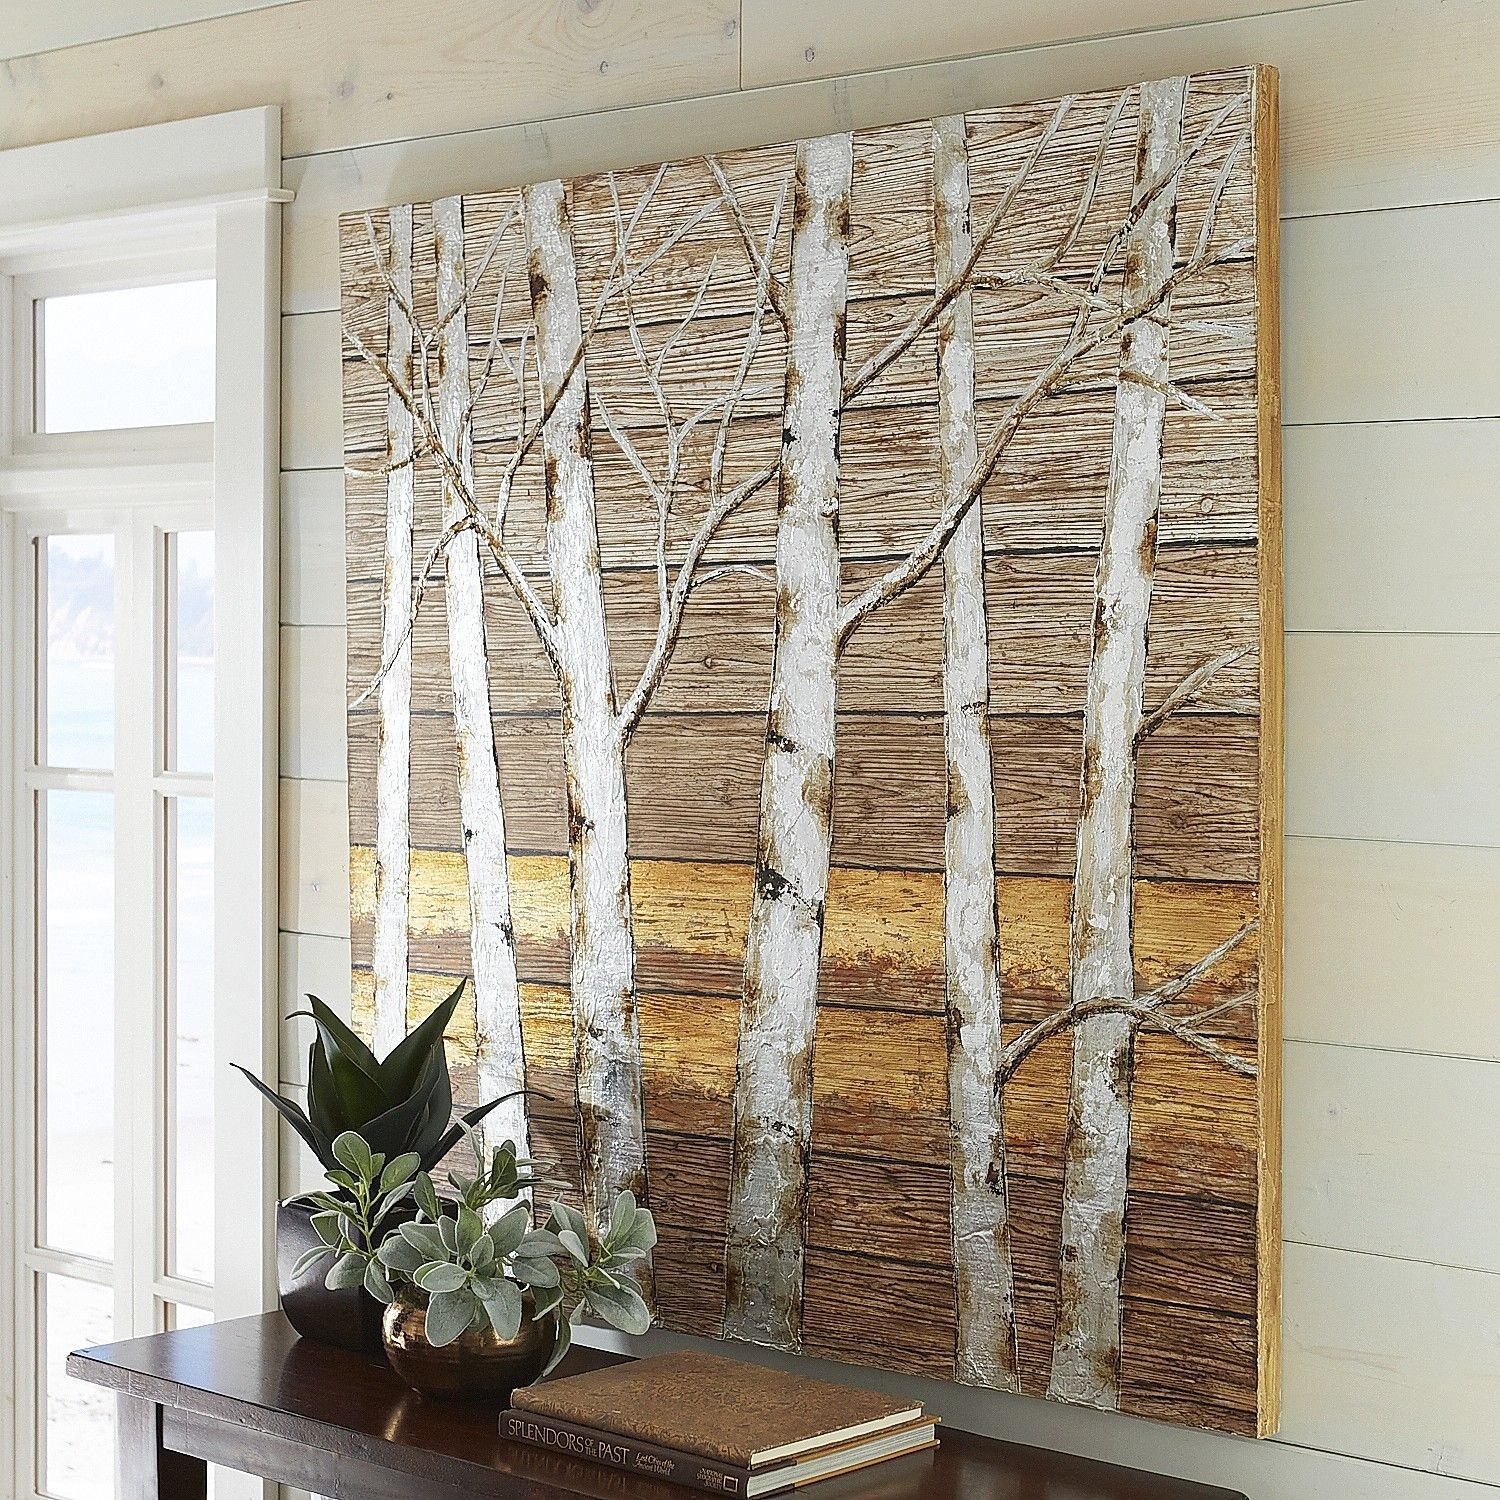 Metallic Birch Trees Wall Art – 4x4 In Most Current Plank Wall Art (View 17 of 20)